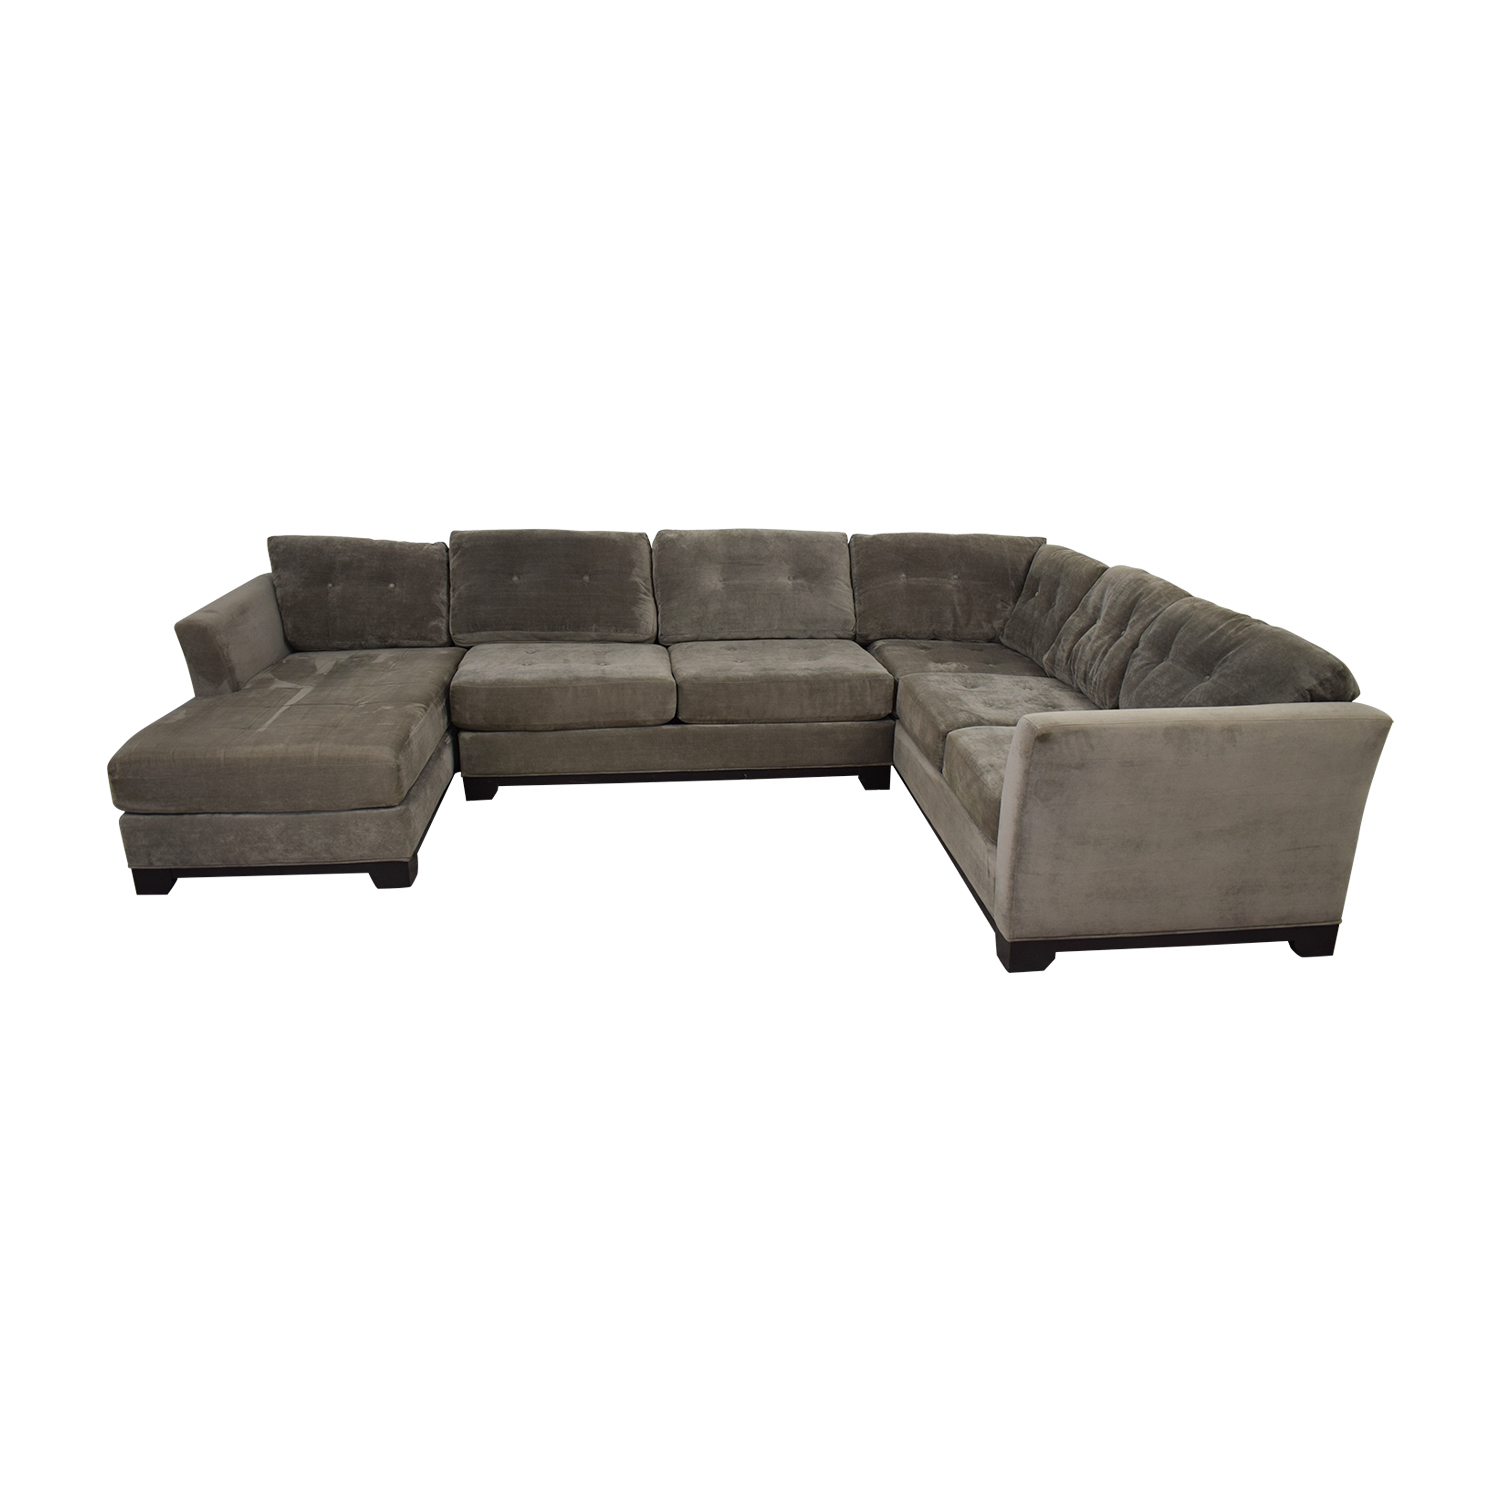 shop Jonathan Lewis Elliot Grey Tufted Microfiber Chaise U-Shaped Sectional Jonathan Lewis